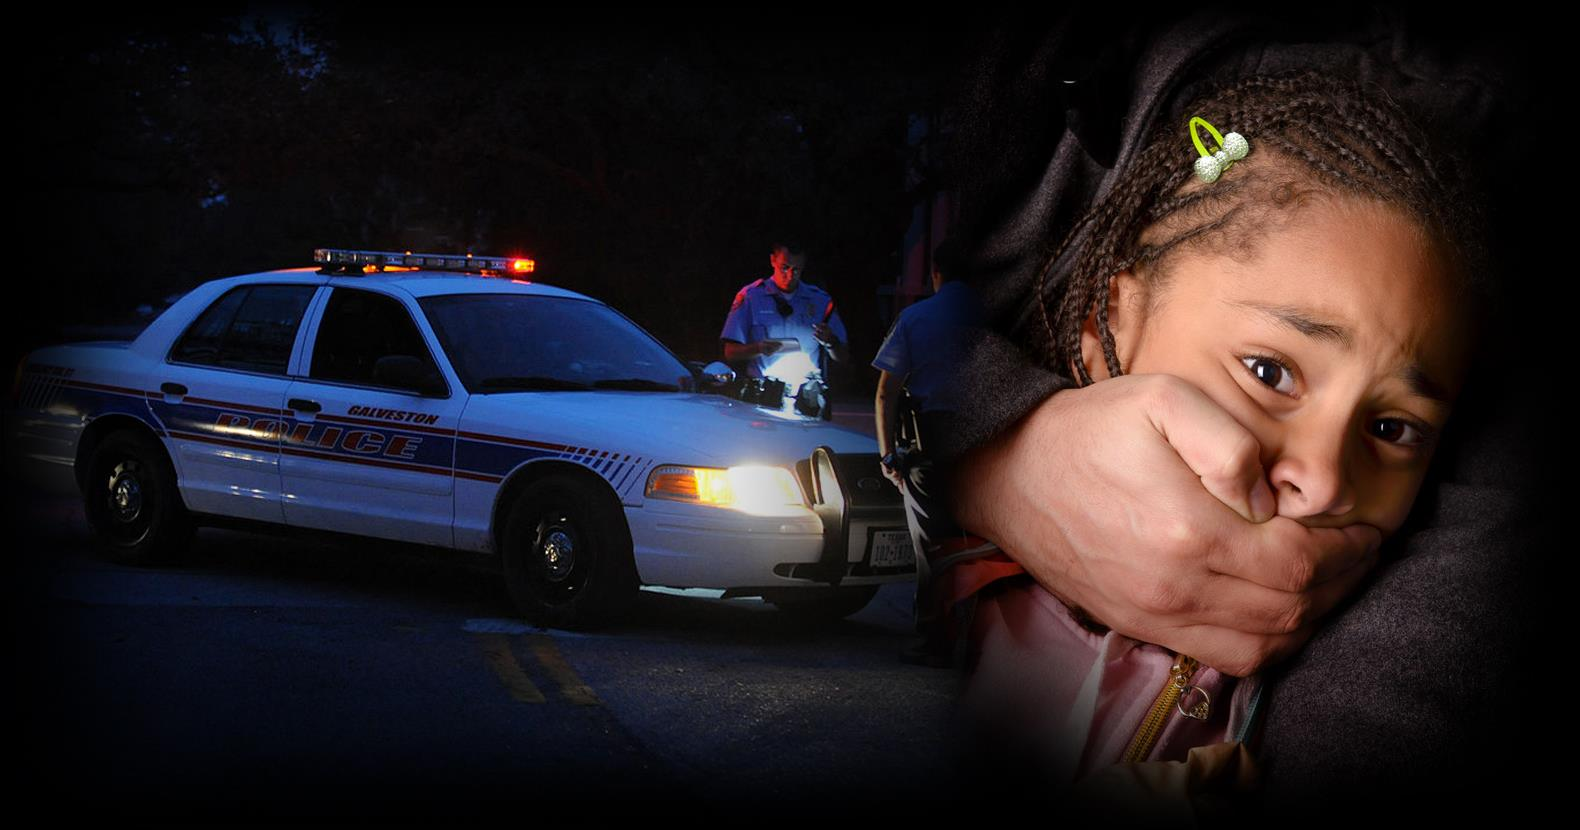 Cops Beat & Kidnap 12-yo Girl in Front of Her Home, Claiming She was a Prostitute